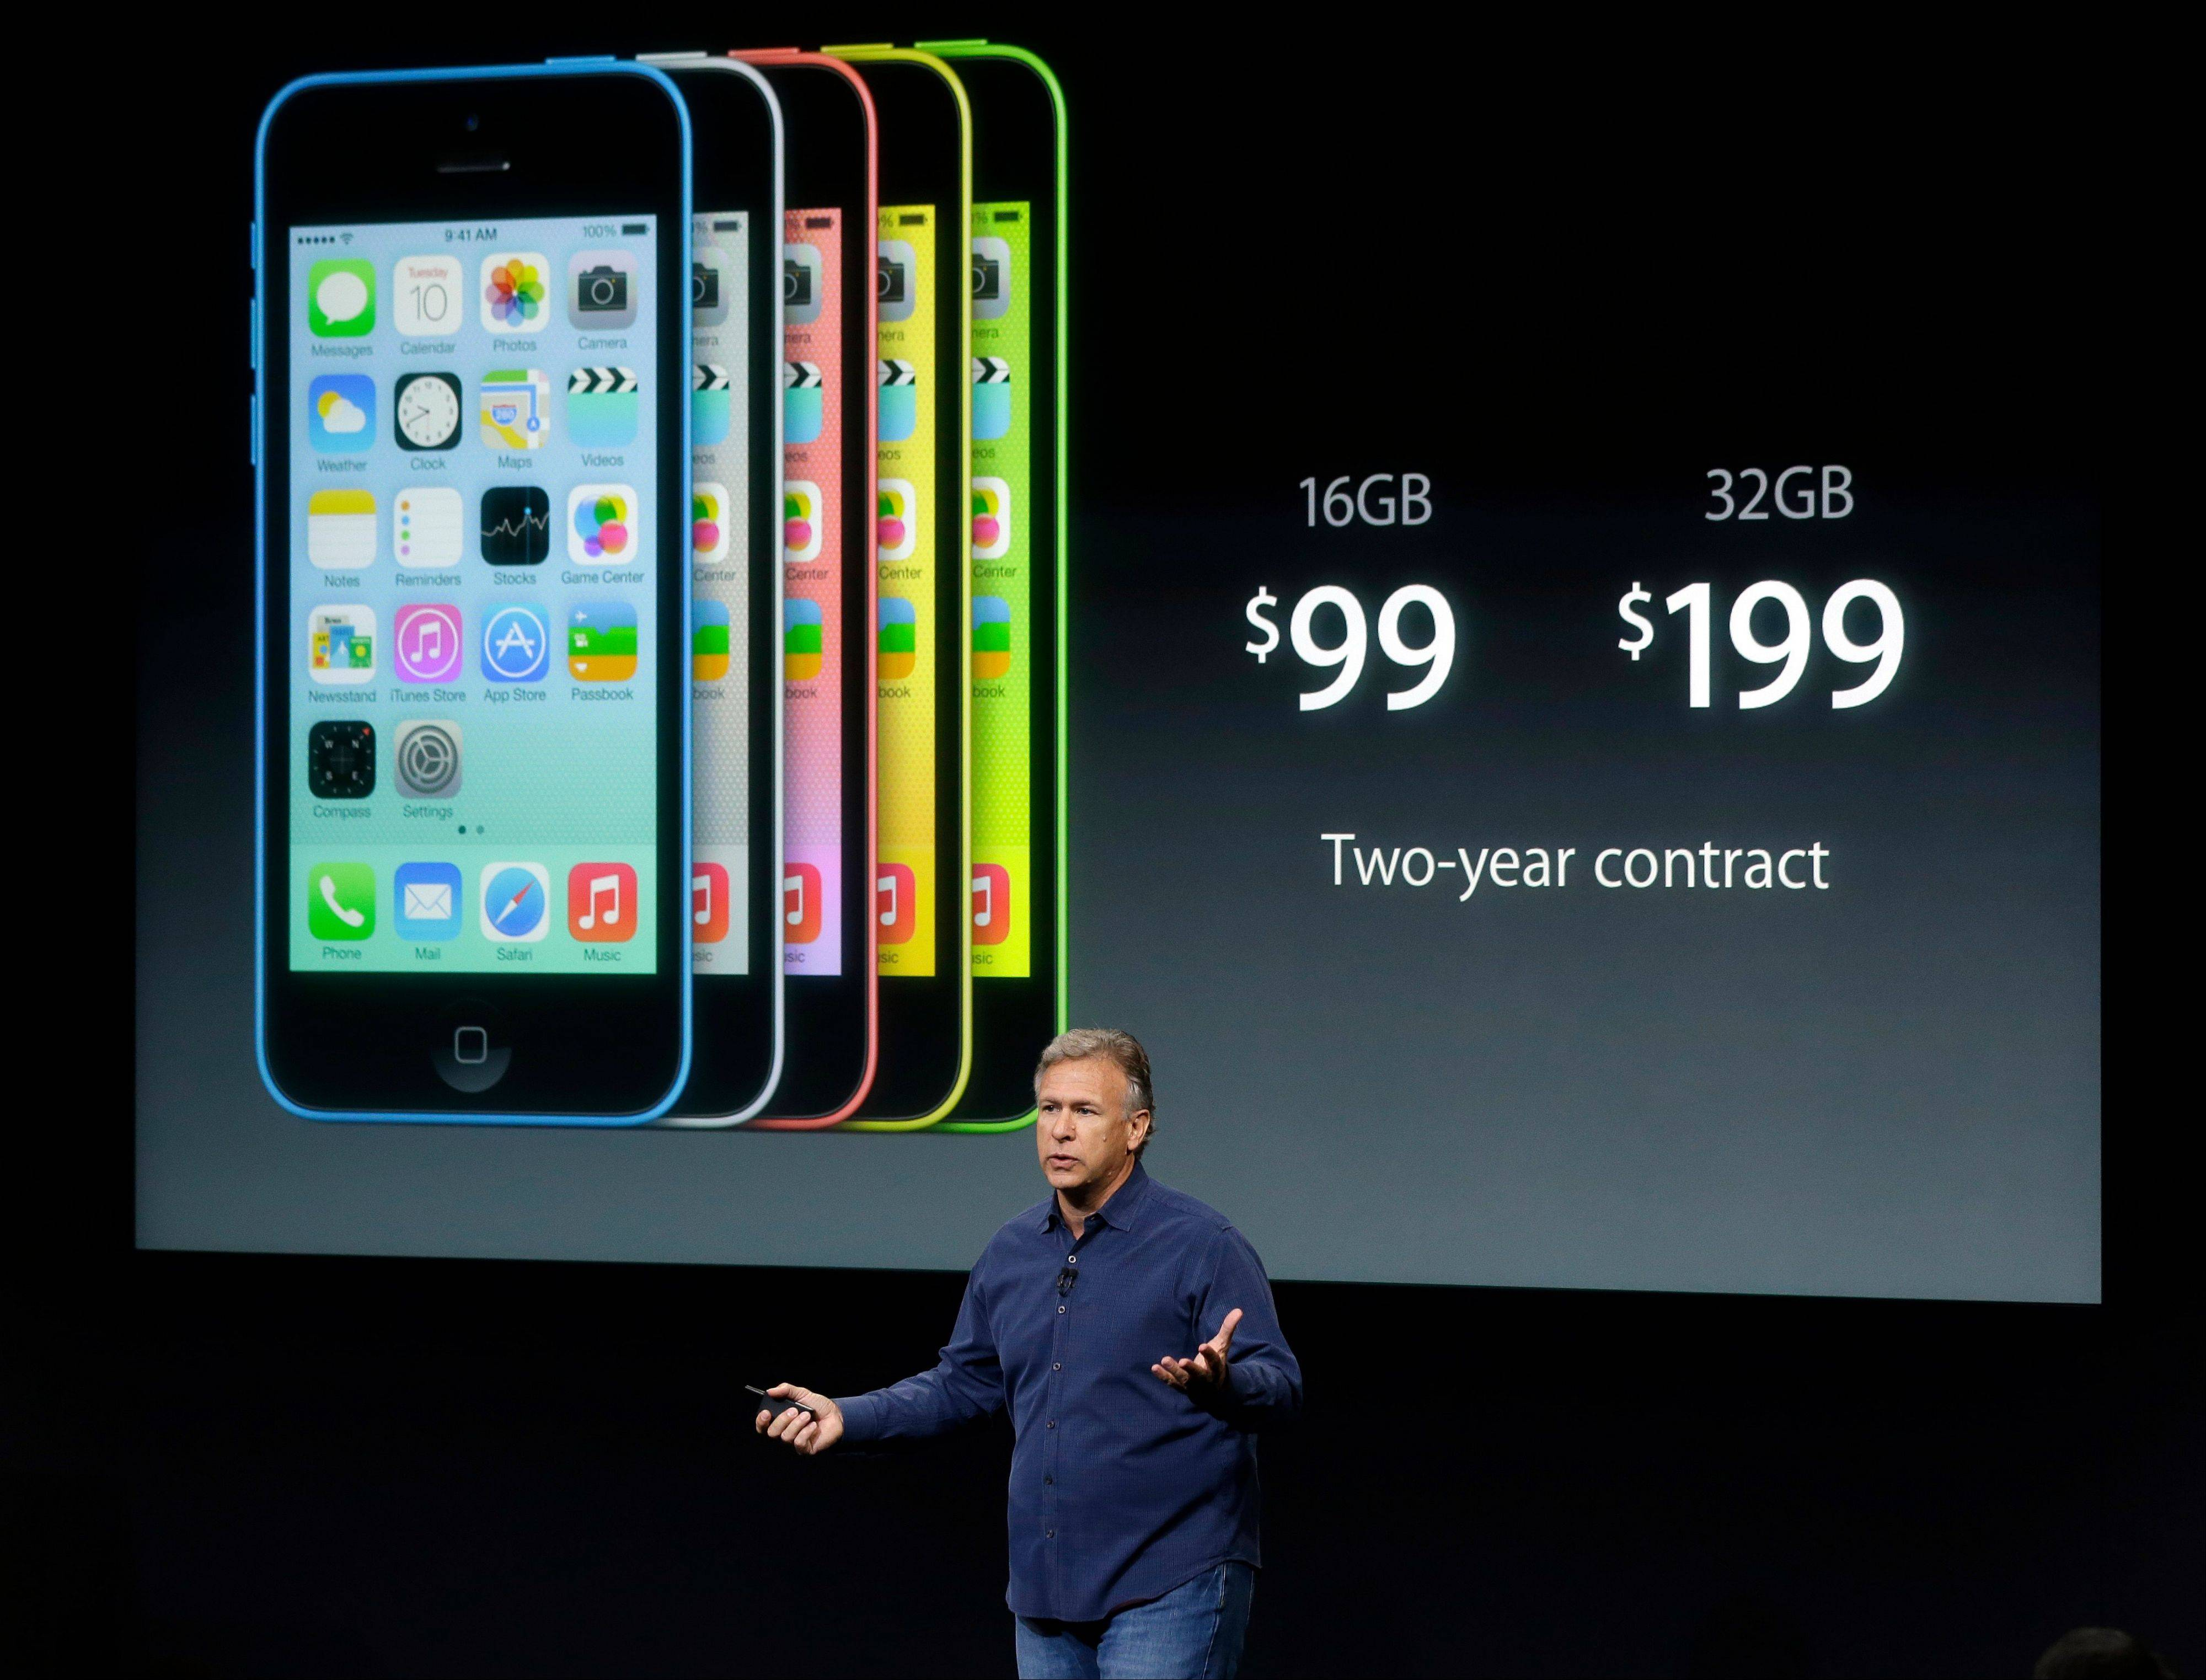 Phil Schiller, Apple's senior vice president of worldwide product marketing, discusses the new iPhone 5c in Cupertino, Calif., Tuesday. The new products Apple debuted Tuesday apparently did not impress investors on Wednesday.